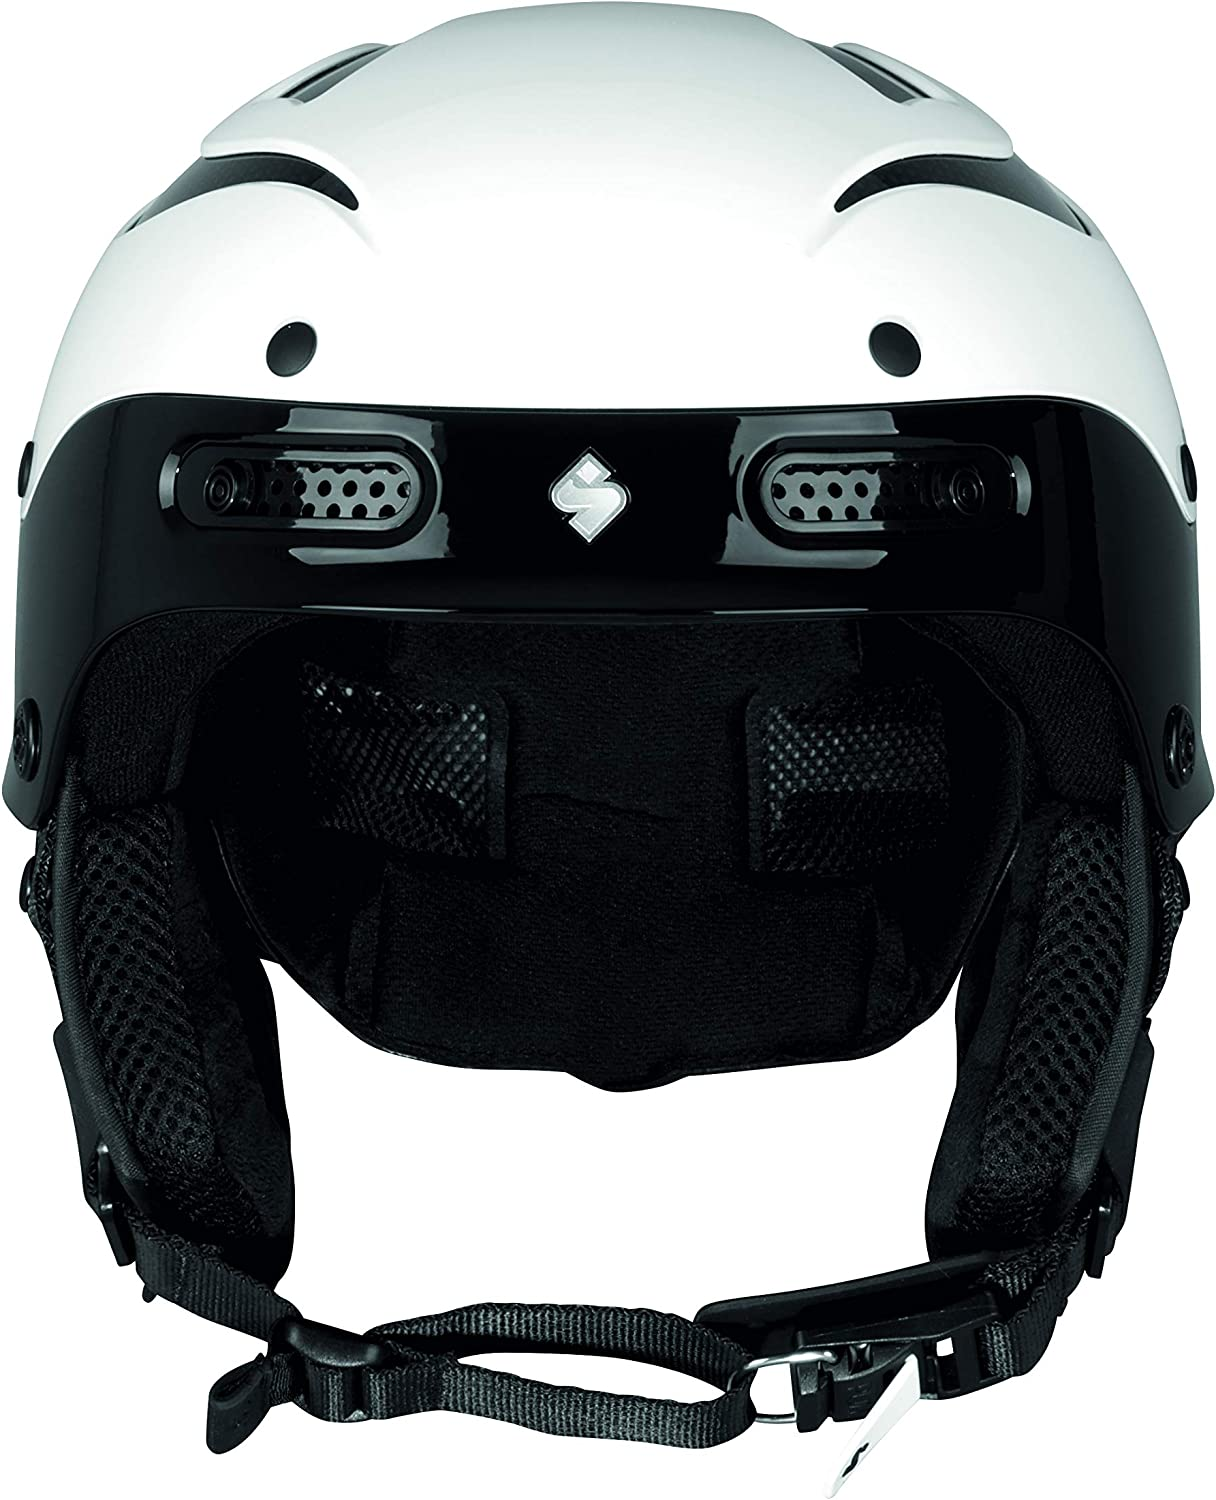 Sweet Protection Trooper II SL MIPS Slalom Race Ski Helmet